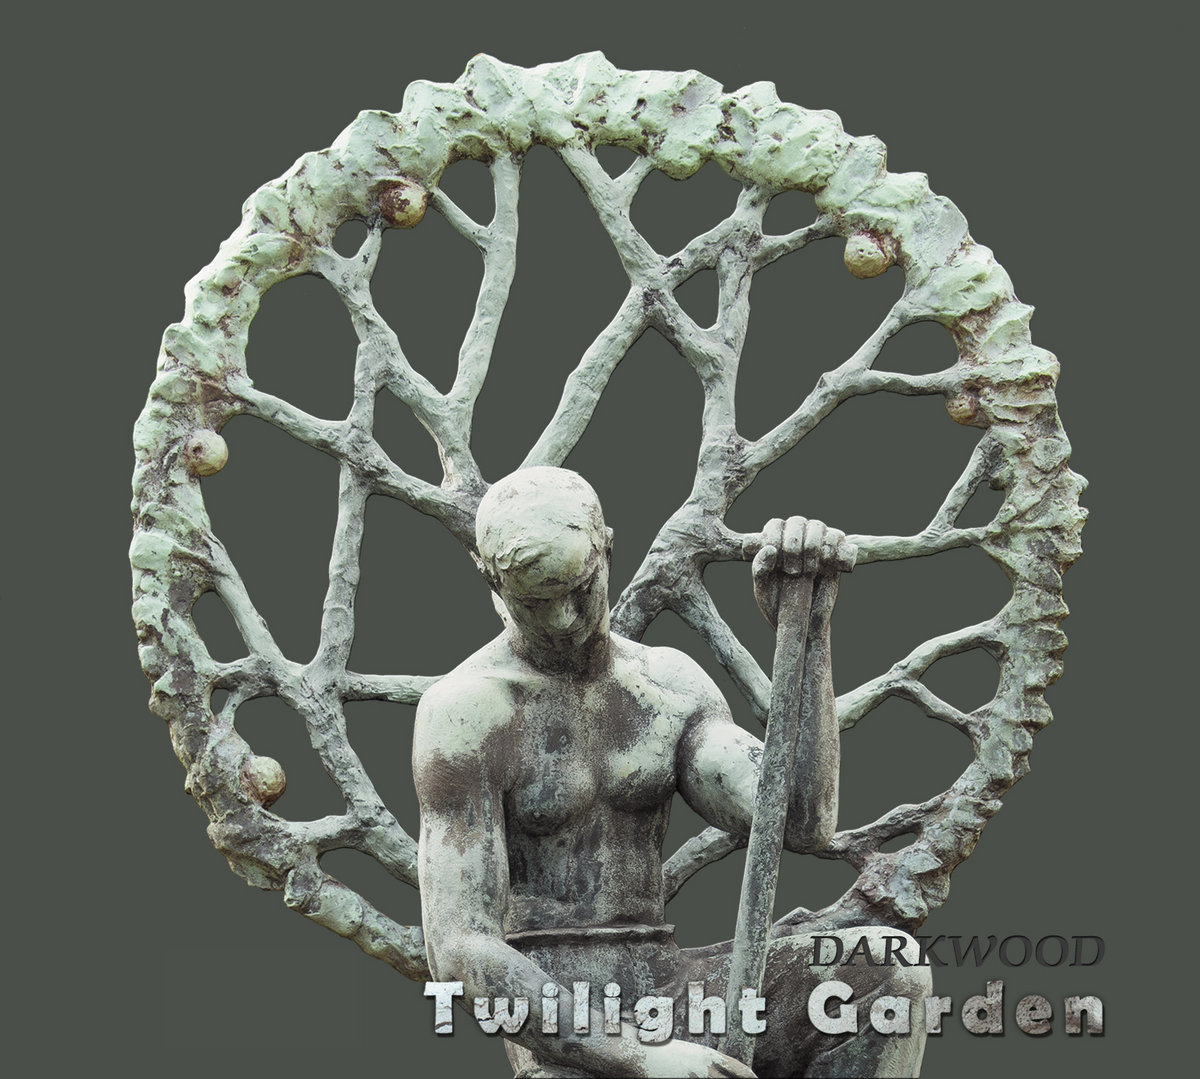 Darkwood – Twilight Garden (2020) [FLAC]